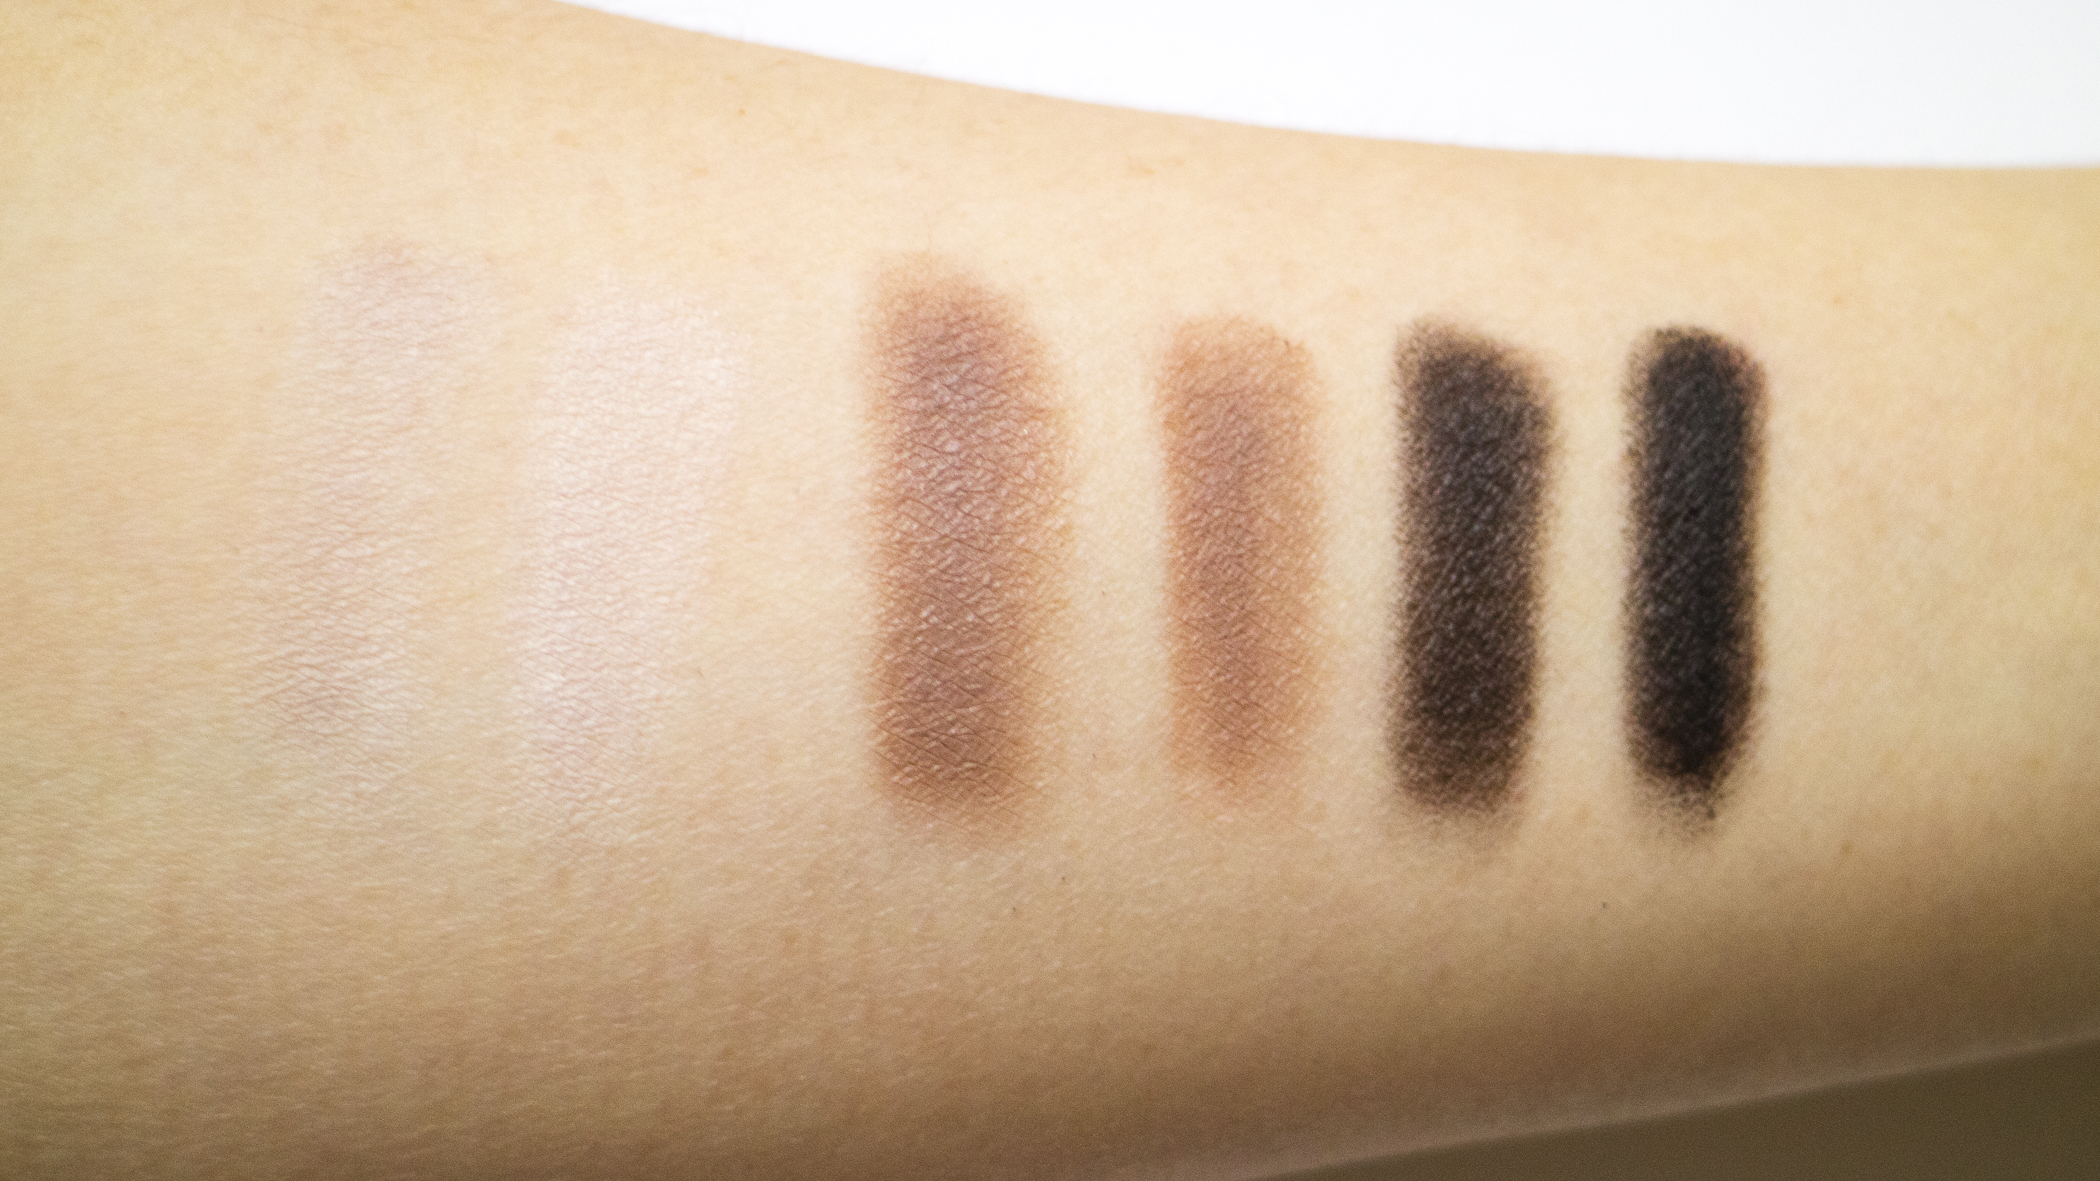 Bottom Row of shadows, each color swatched onto primer - dry on the left, and wet on the right.